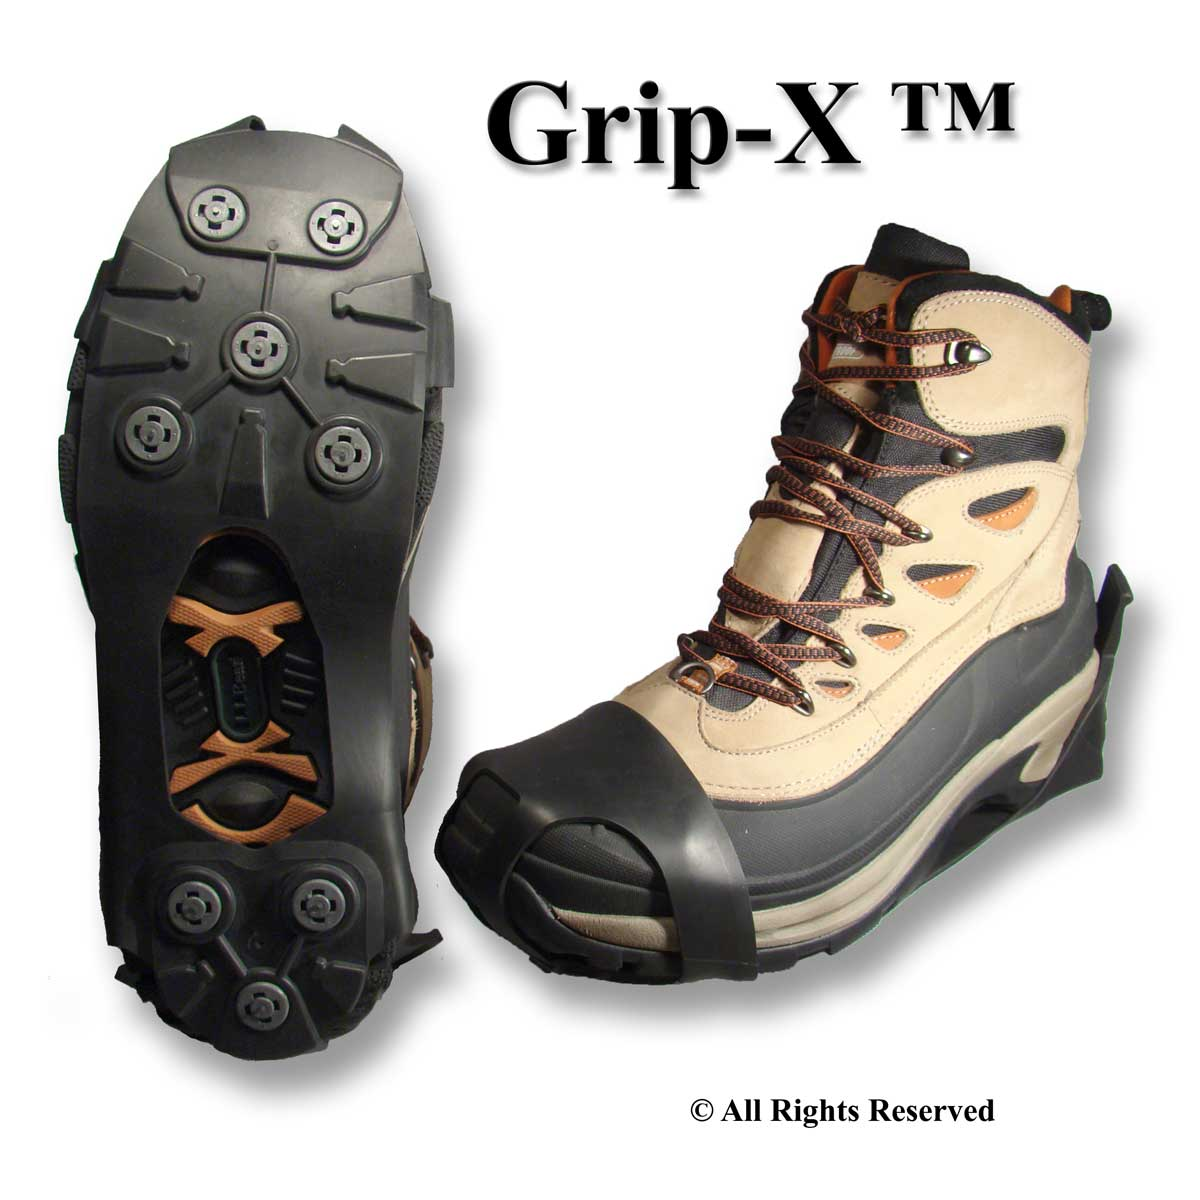 Ice Cleats For Shoes >> Do Ice Cleats Work? - Slipresistant.net Blog